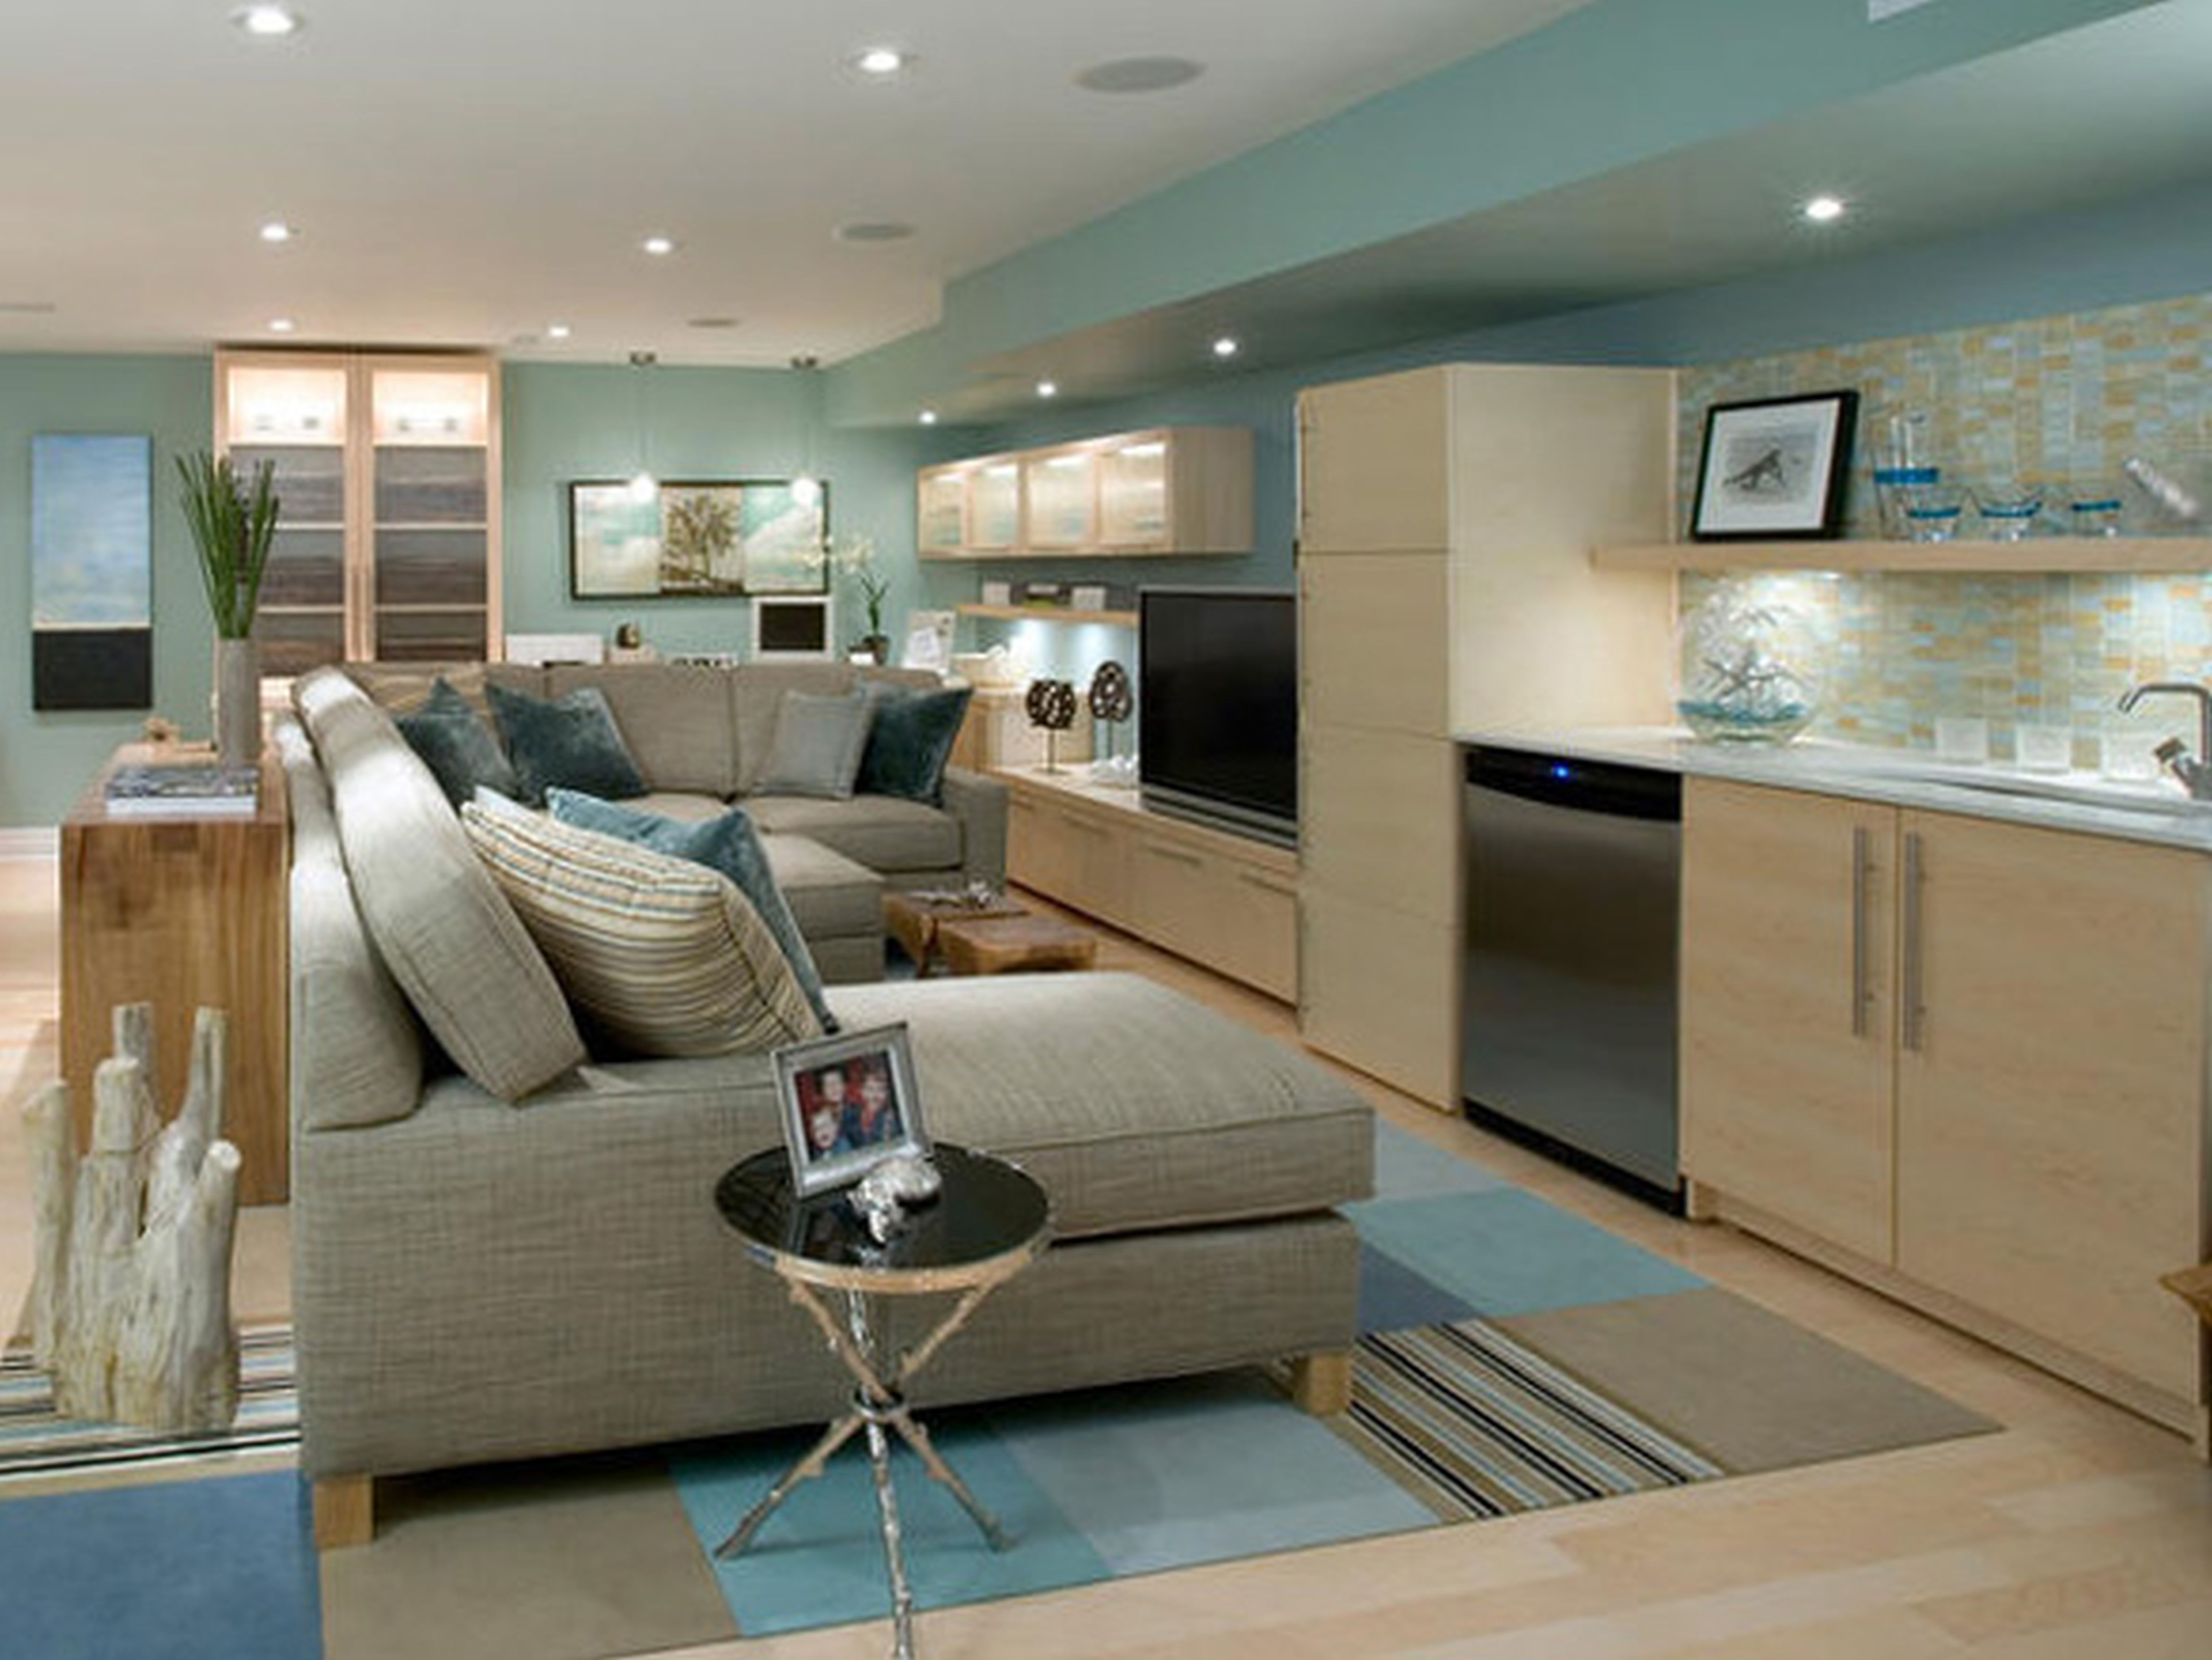 Utilizing Basement Family Room Design Ideas Paint Colors For A Basement Family Room With Recessed Light And Wall Shelf & Utilizing Basement Family Room Design Ideas Paint Colors For A ...